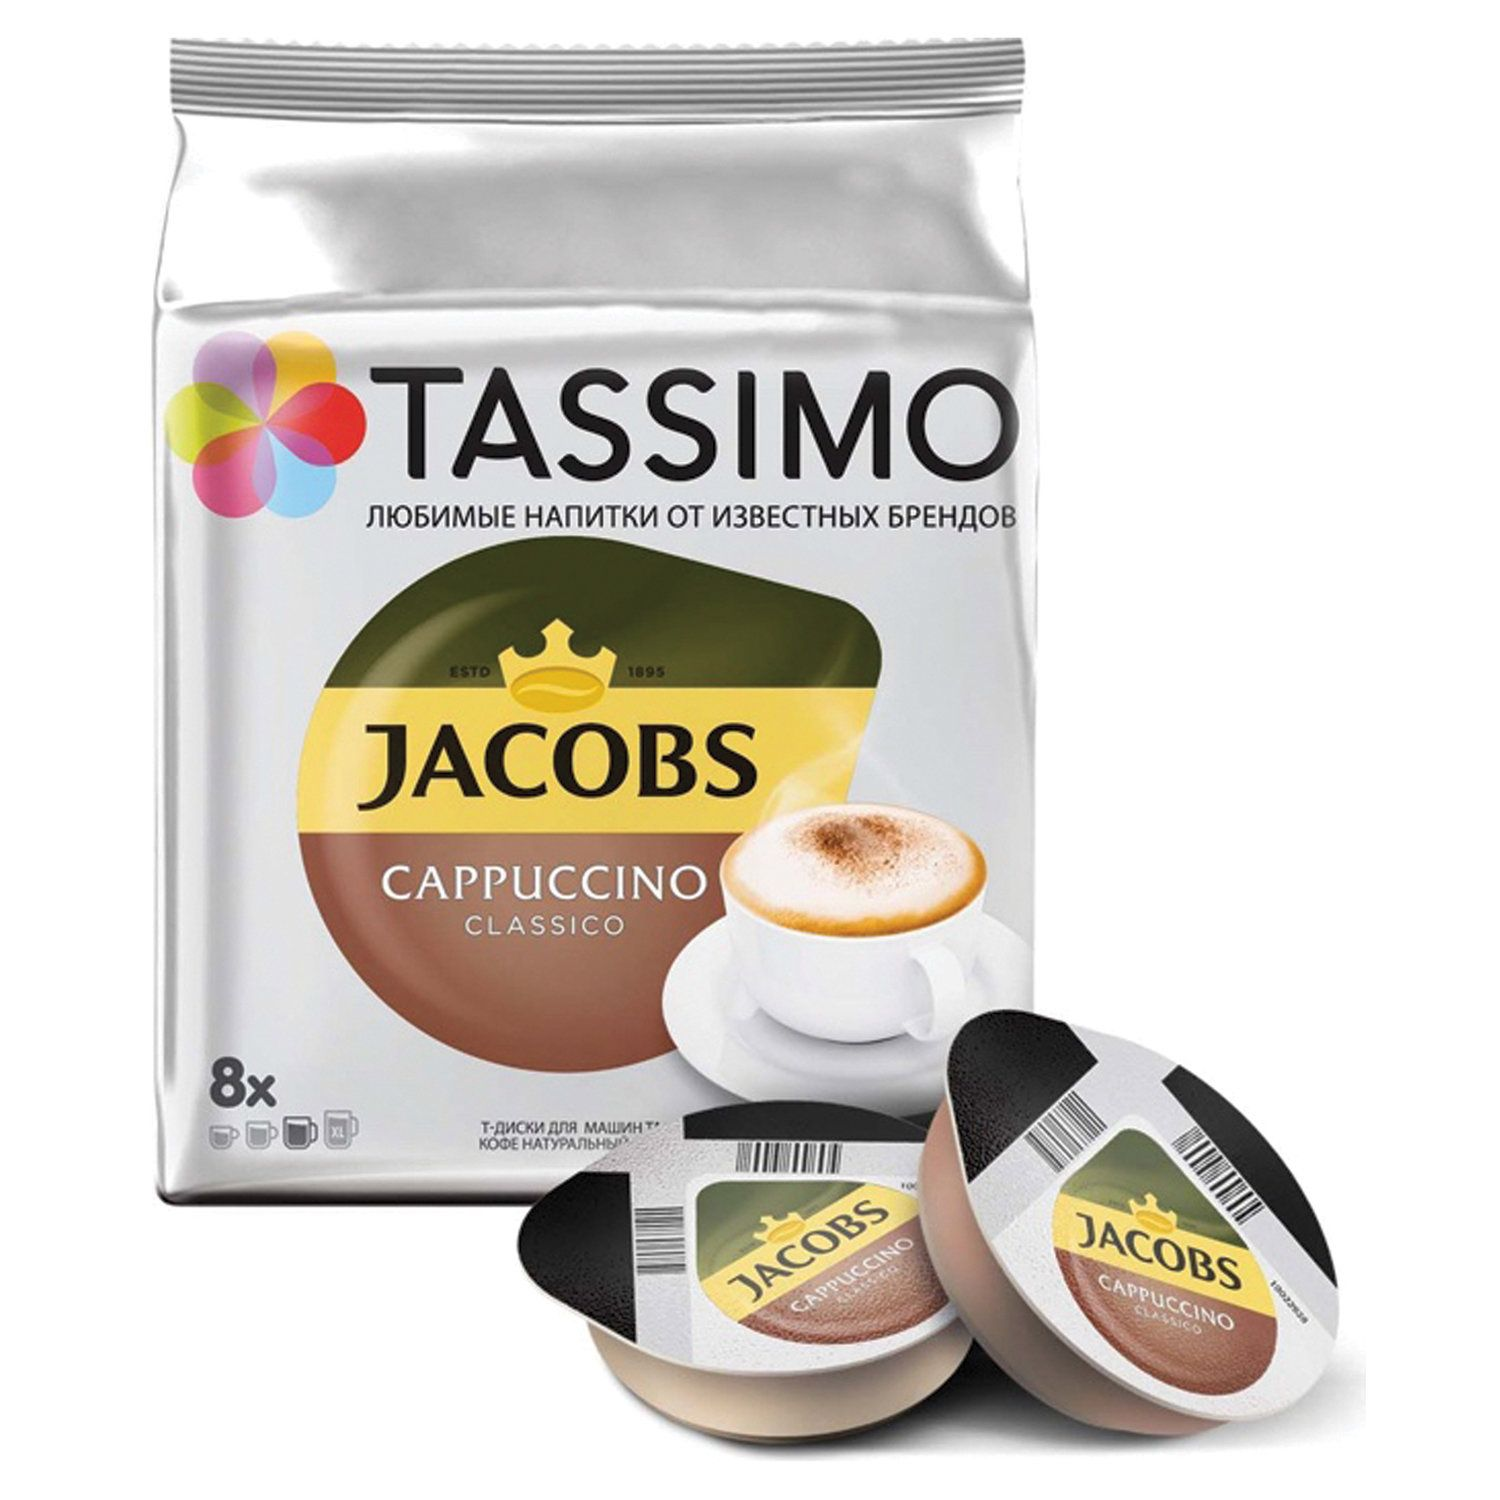 """TASSIMO / Capsules for coffee machines JACOBS """"Cappuccino"""" natural coffee 8 pcs. x 8 g, milk capsules 8 pcs. x 40 g"""